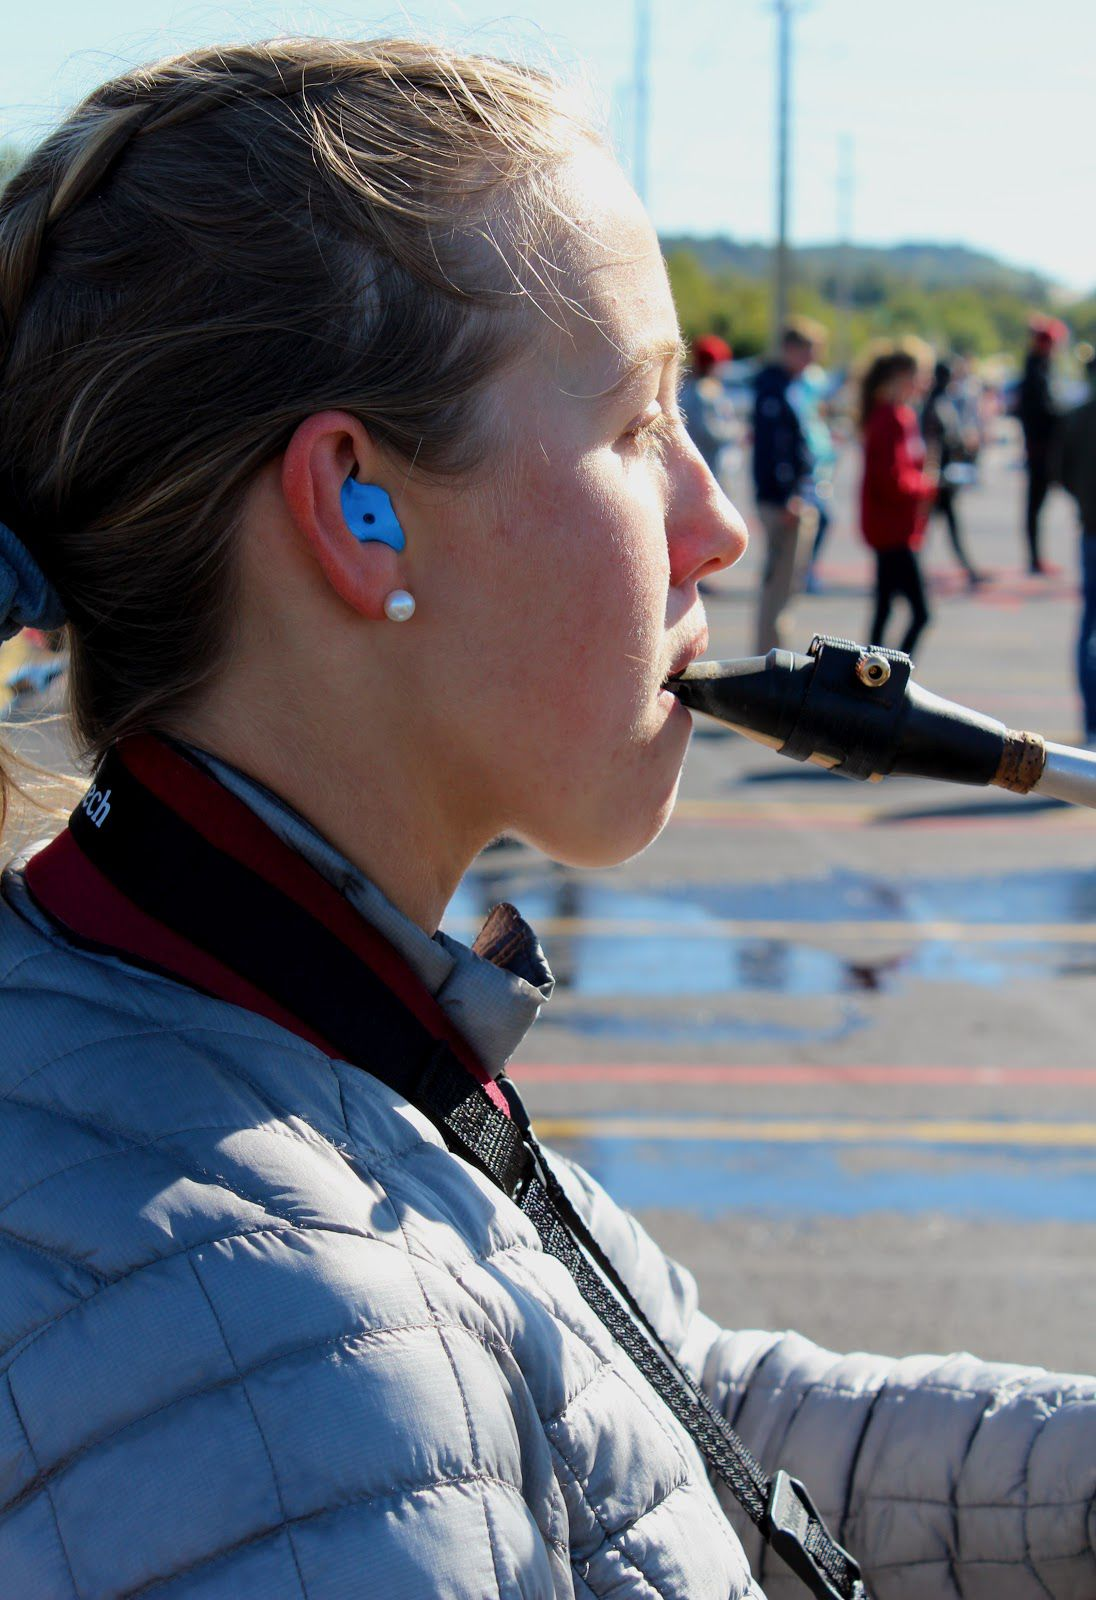 Some UA Marching Band Members Receive Custom-Fit Ear Plugs